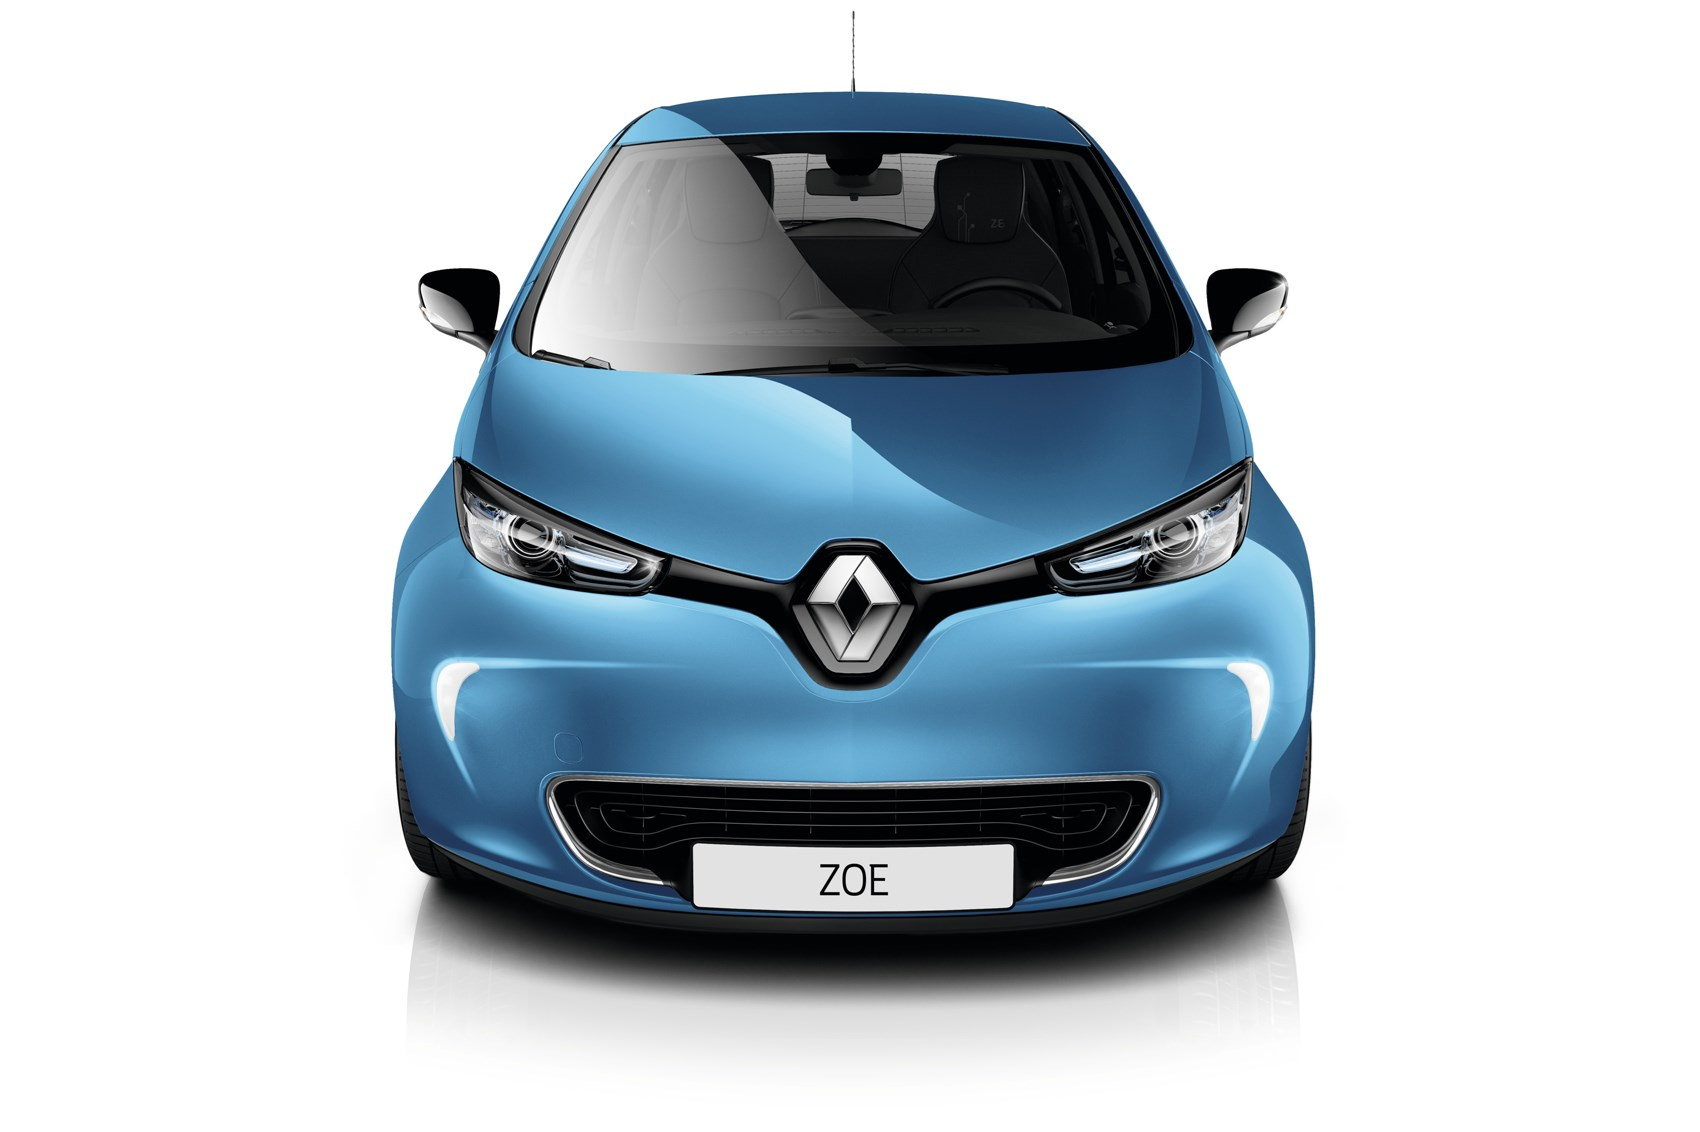 grown ranger latest renault zoe claims 250 miles per charge car magazine. Black Bedroom Furniture Sets. Home Design Ideas